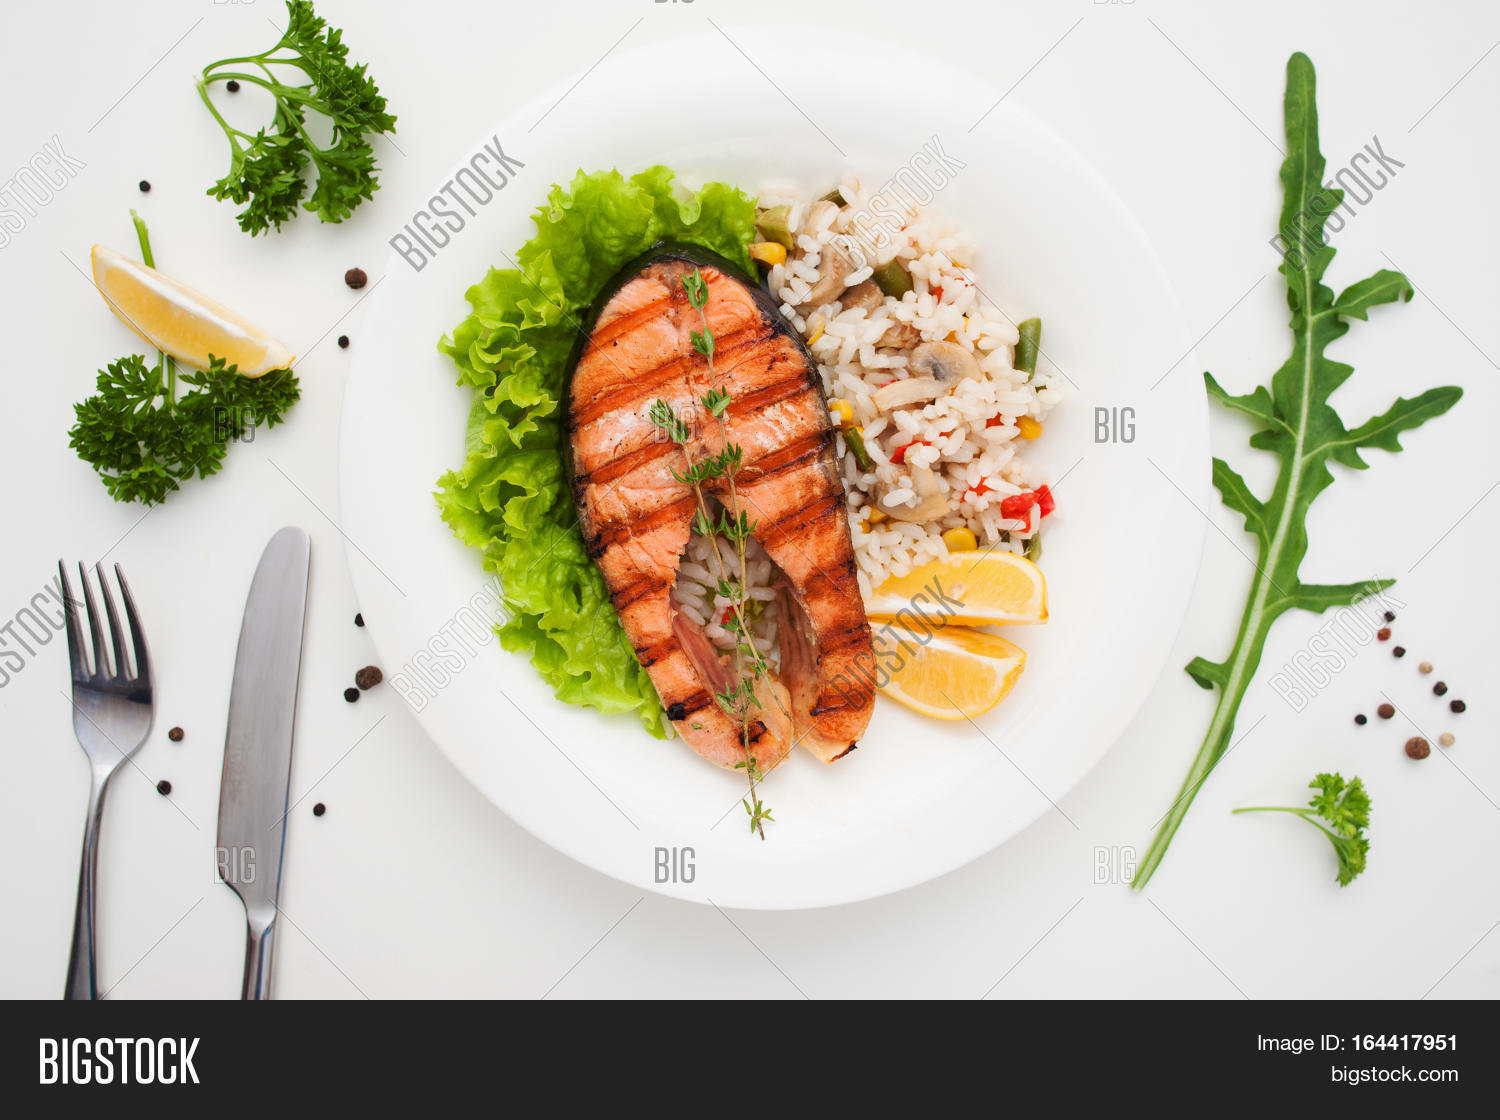 Grilled salmon rice cutlery flat image photo bigstock for One fish two fish restaurant